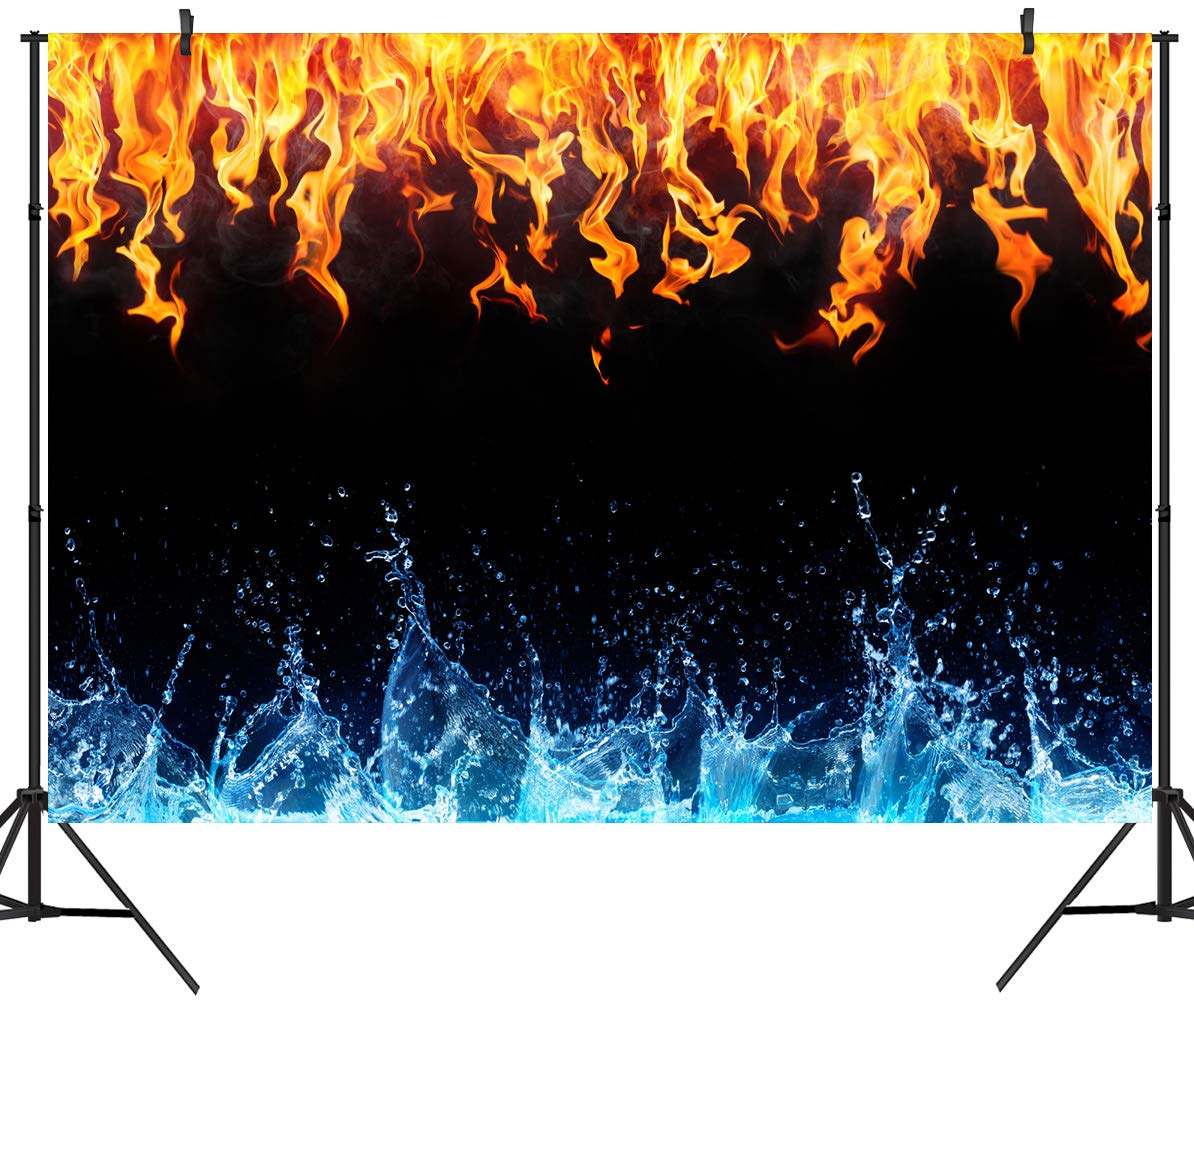 DULUDA 7X5FT Ice Fire Backdrop Artistic Blue Water Red Flame Vinyl Photograghy Background for Selfie Birthday Party Pictures Photo Studio Prop Booth Shoot FS25A